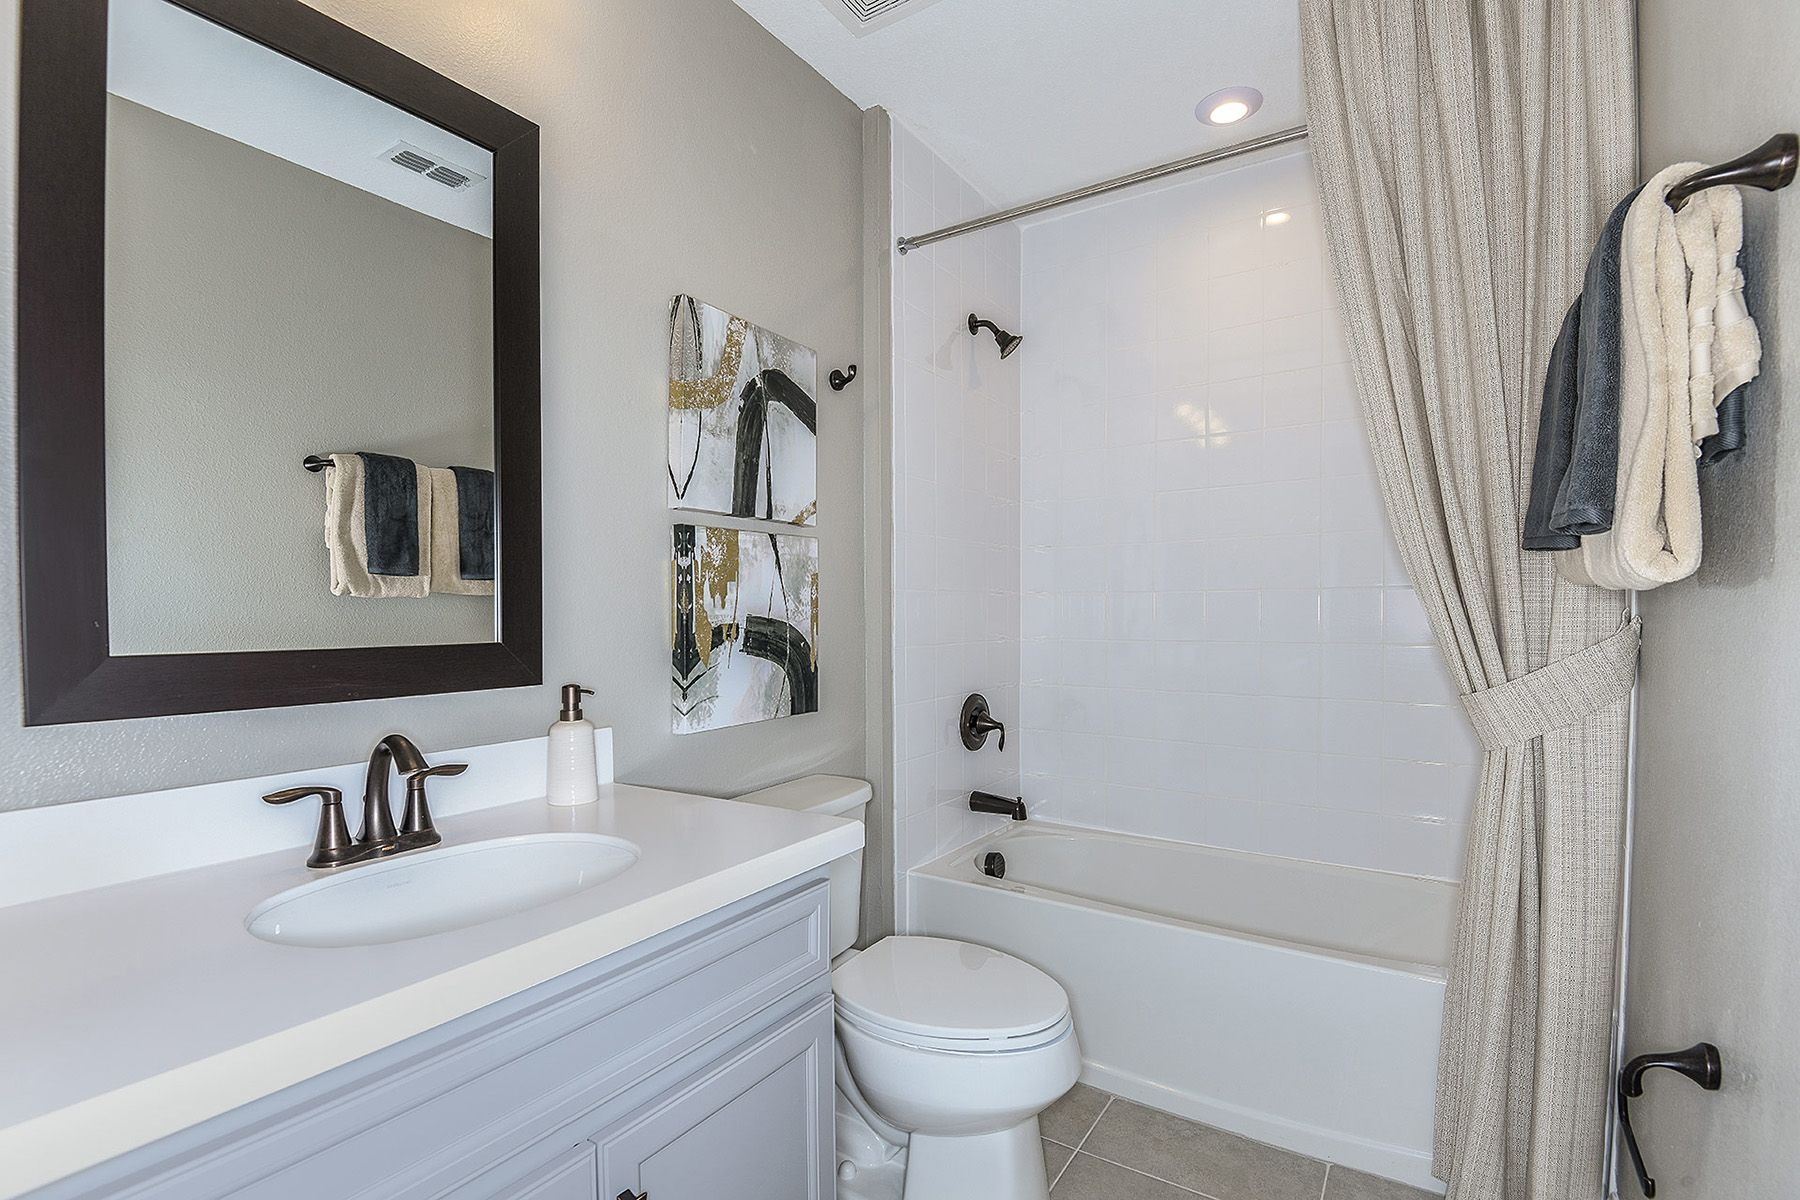 Bathroom featured in the Ormond By Mattamy Homes in Tampa-St. Petersburg, FL